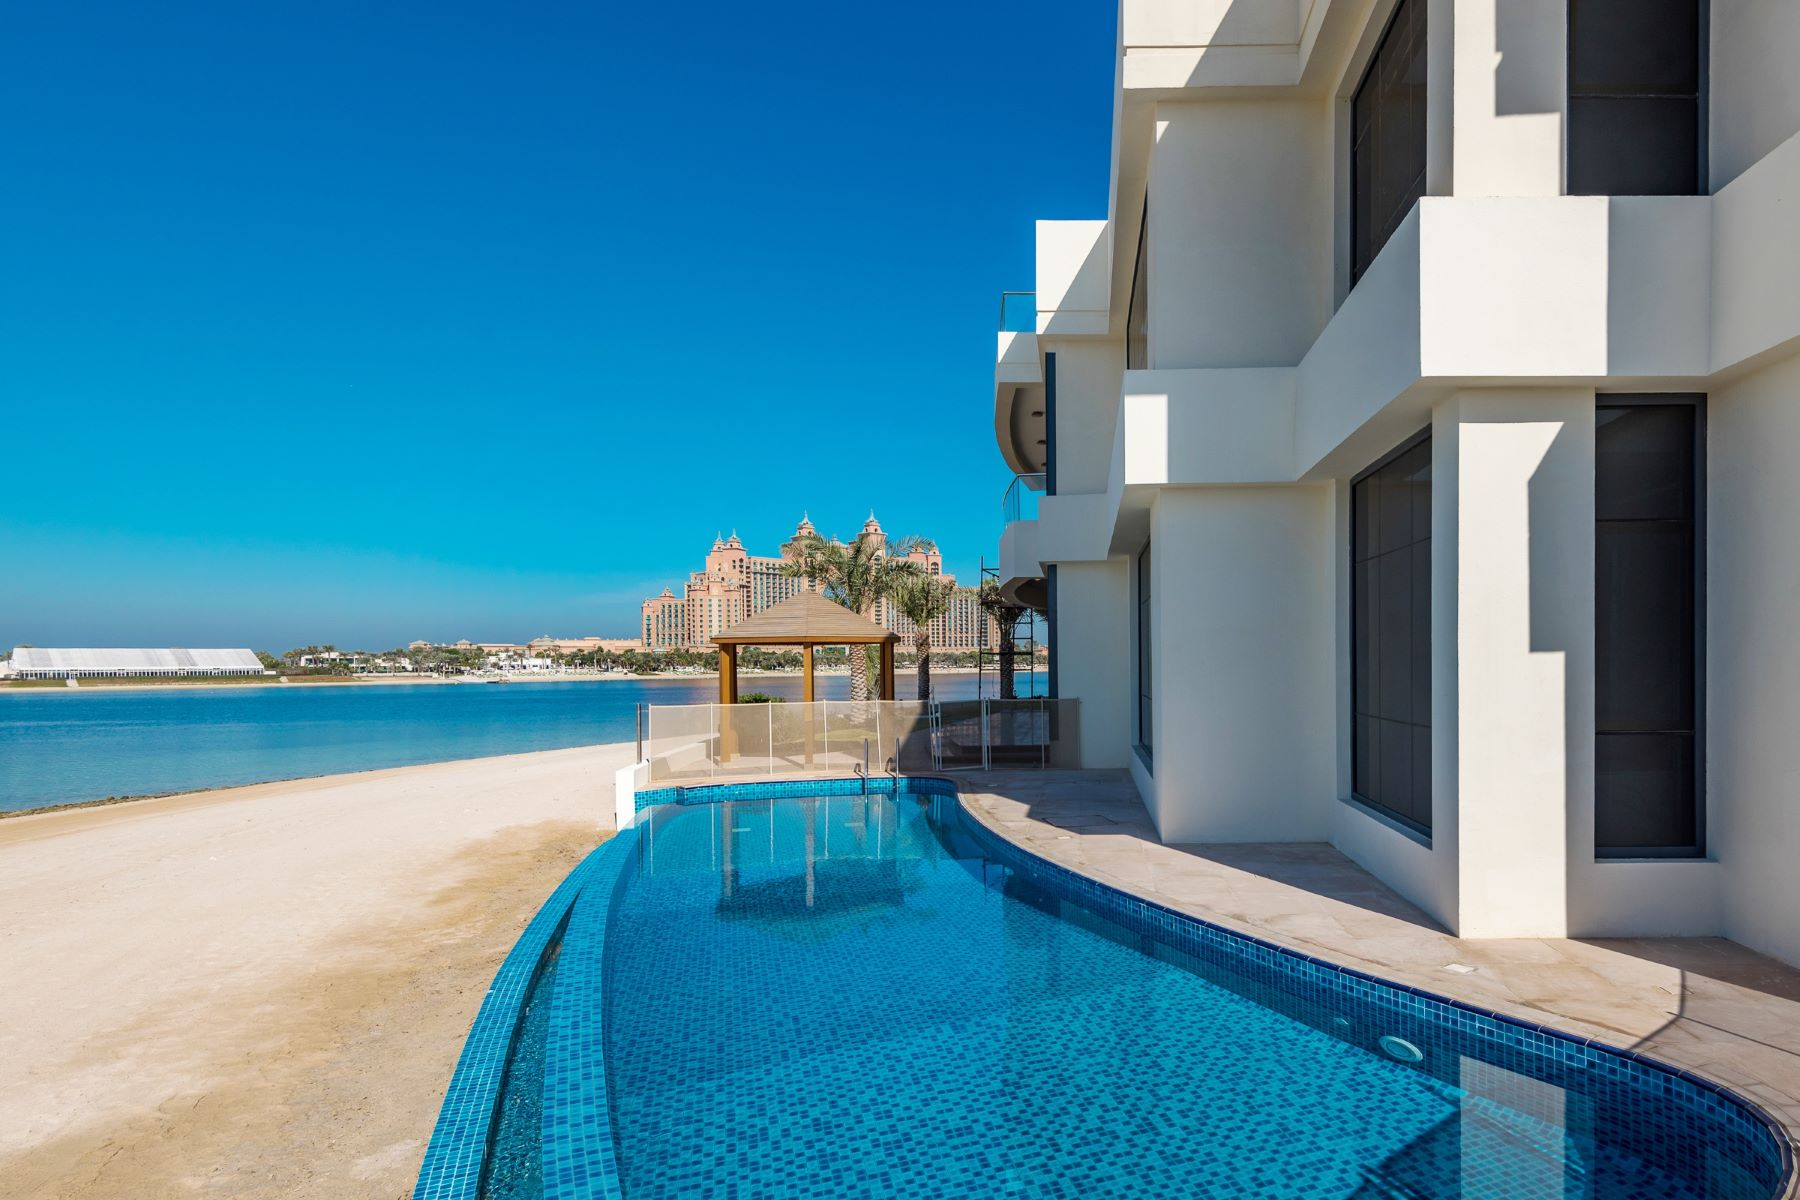 Additional photo for property listing at New Custom Built  5BR villa TIP location Signature Villas Palm Jumeirah Dubai, Dubai 12345 United Arab Emirates